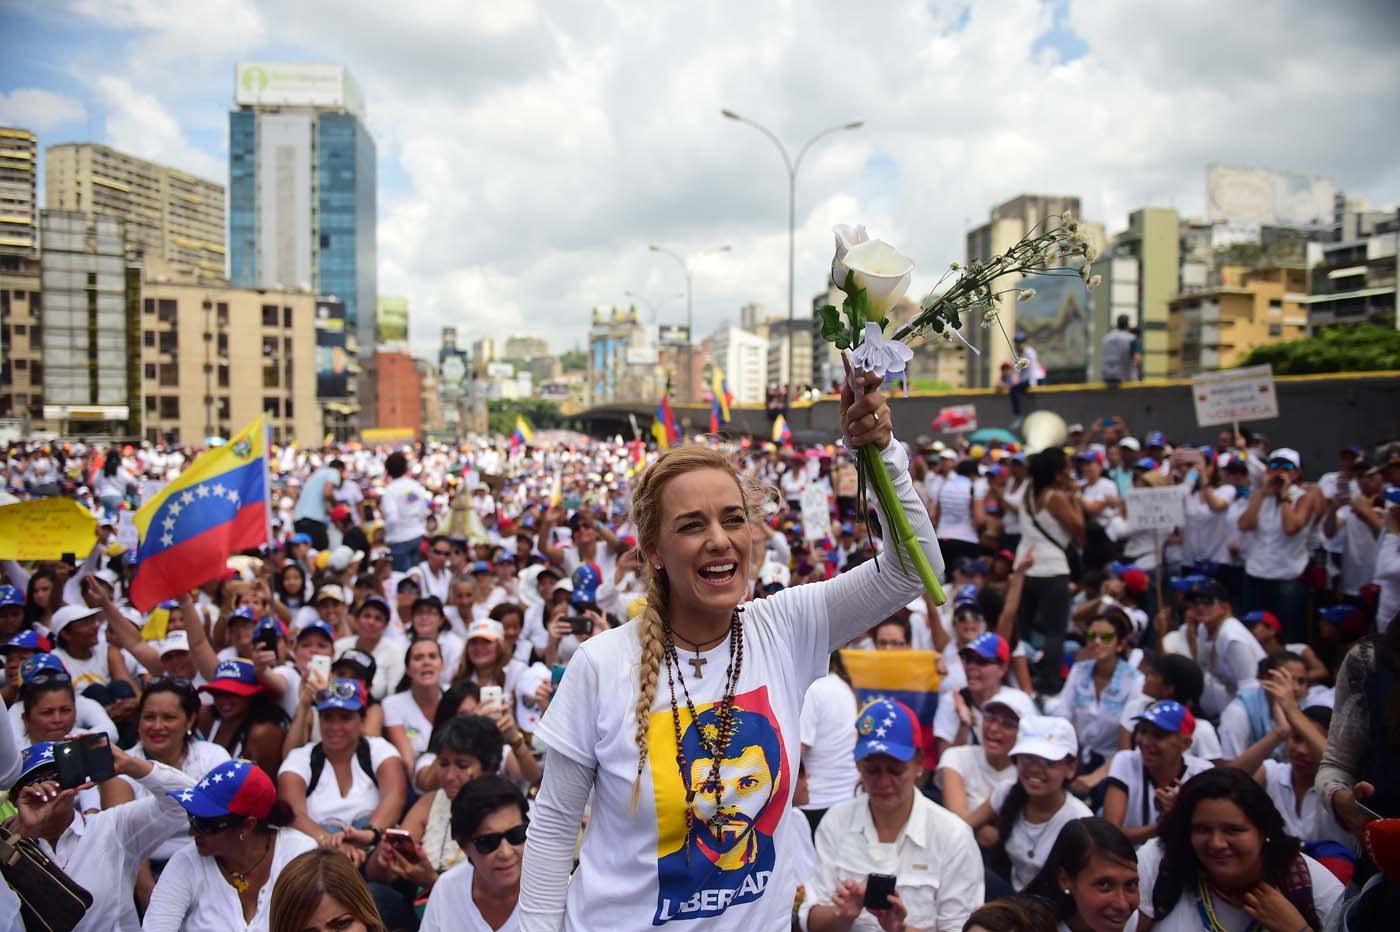 The wife of imprisoned opposition leader Leopoldo Lopez, Lilian Tintori (C), takes part in a women's march aimed to keep pressure on President Nicolas Maduro, whose authority is being increasingly challenged by protests and deadly unrest, in Caracas on May 6, 2017. The death toll since April, when the protests intensified after Maduro's administration and the courts stepped up efforts to undermine the opposition, is at least 36 according to prosecutors. / AFP PHOTO / RONALDO SCHEMIDT